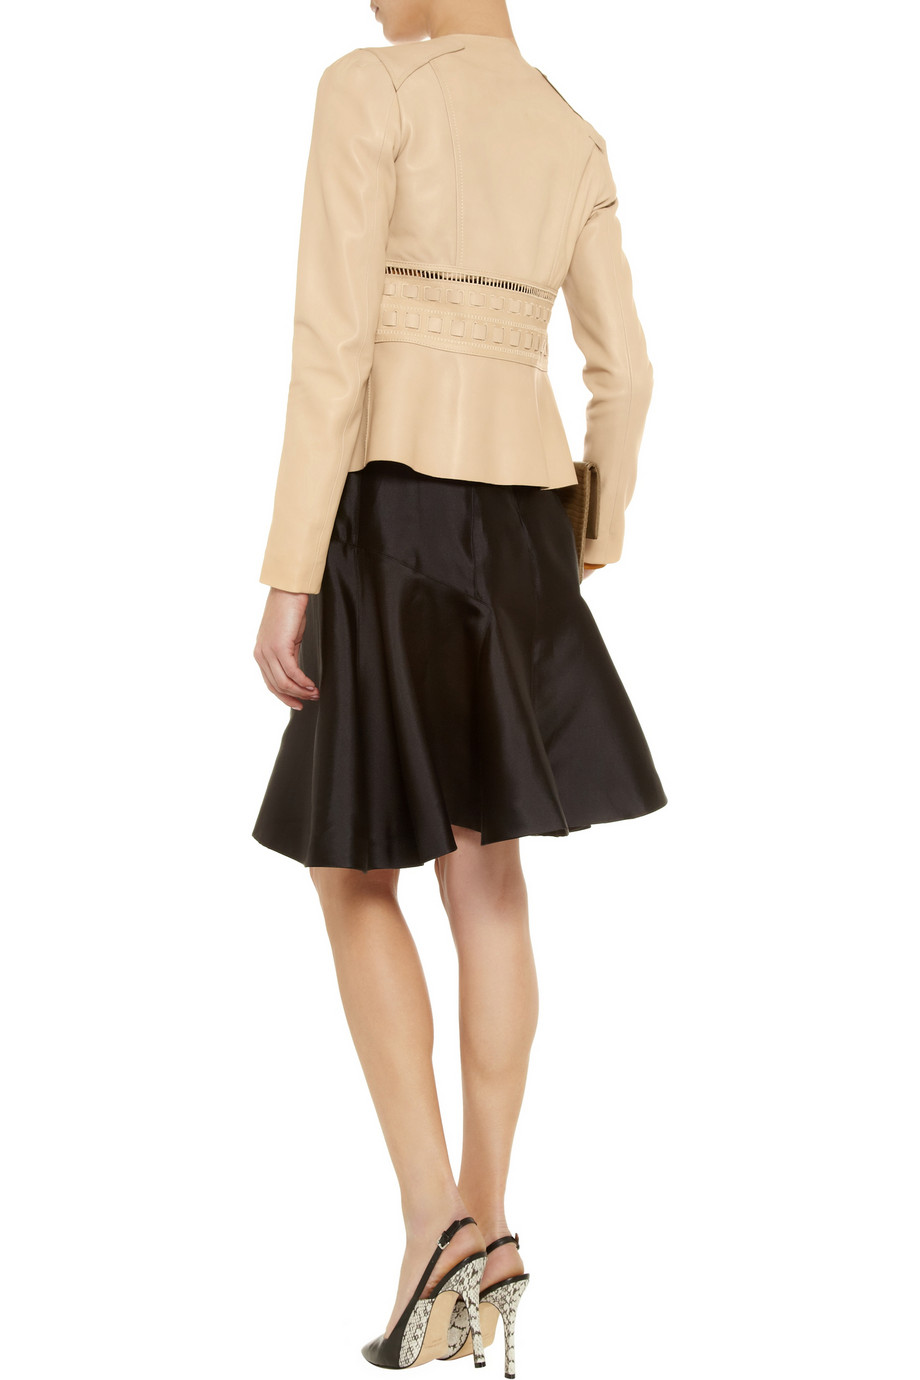 Valentino Bow Embellished Leather Jacket In Natural Lyst